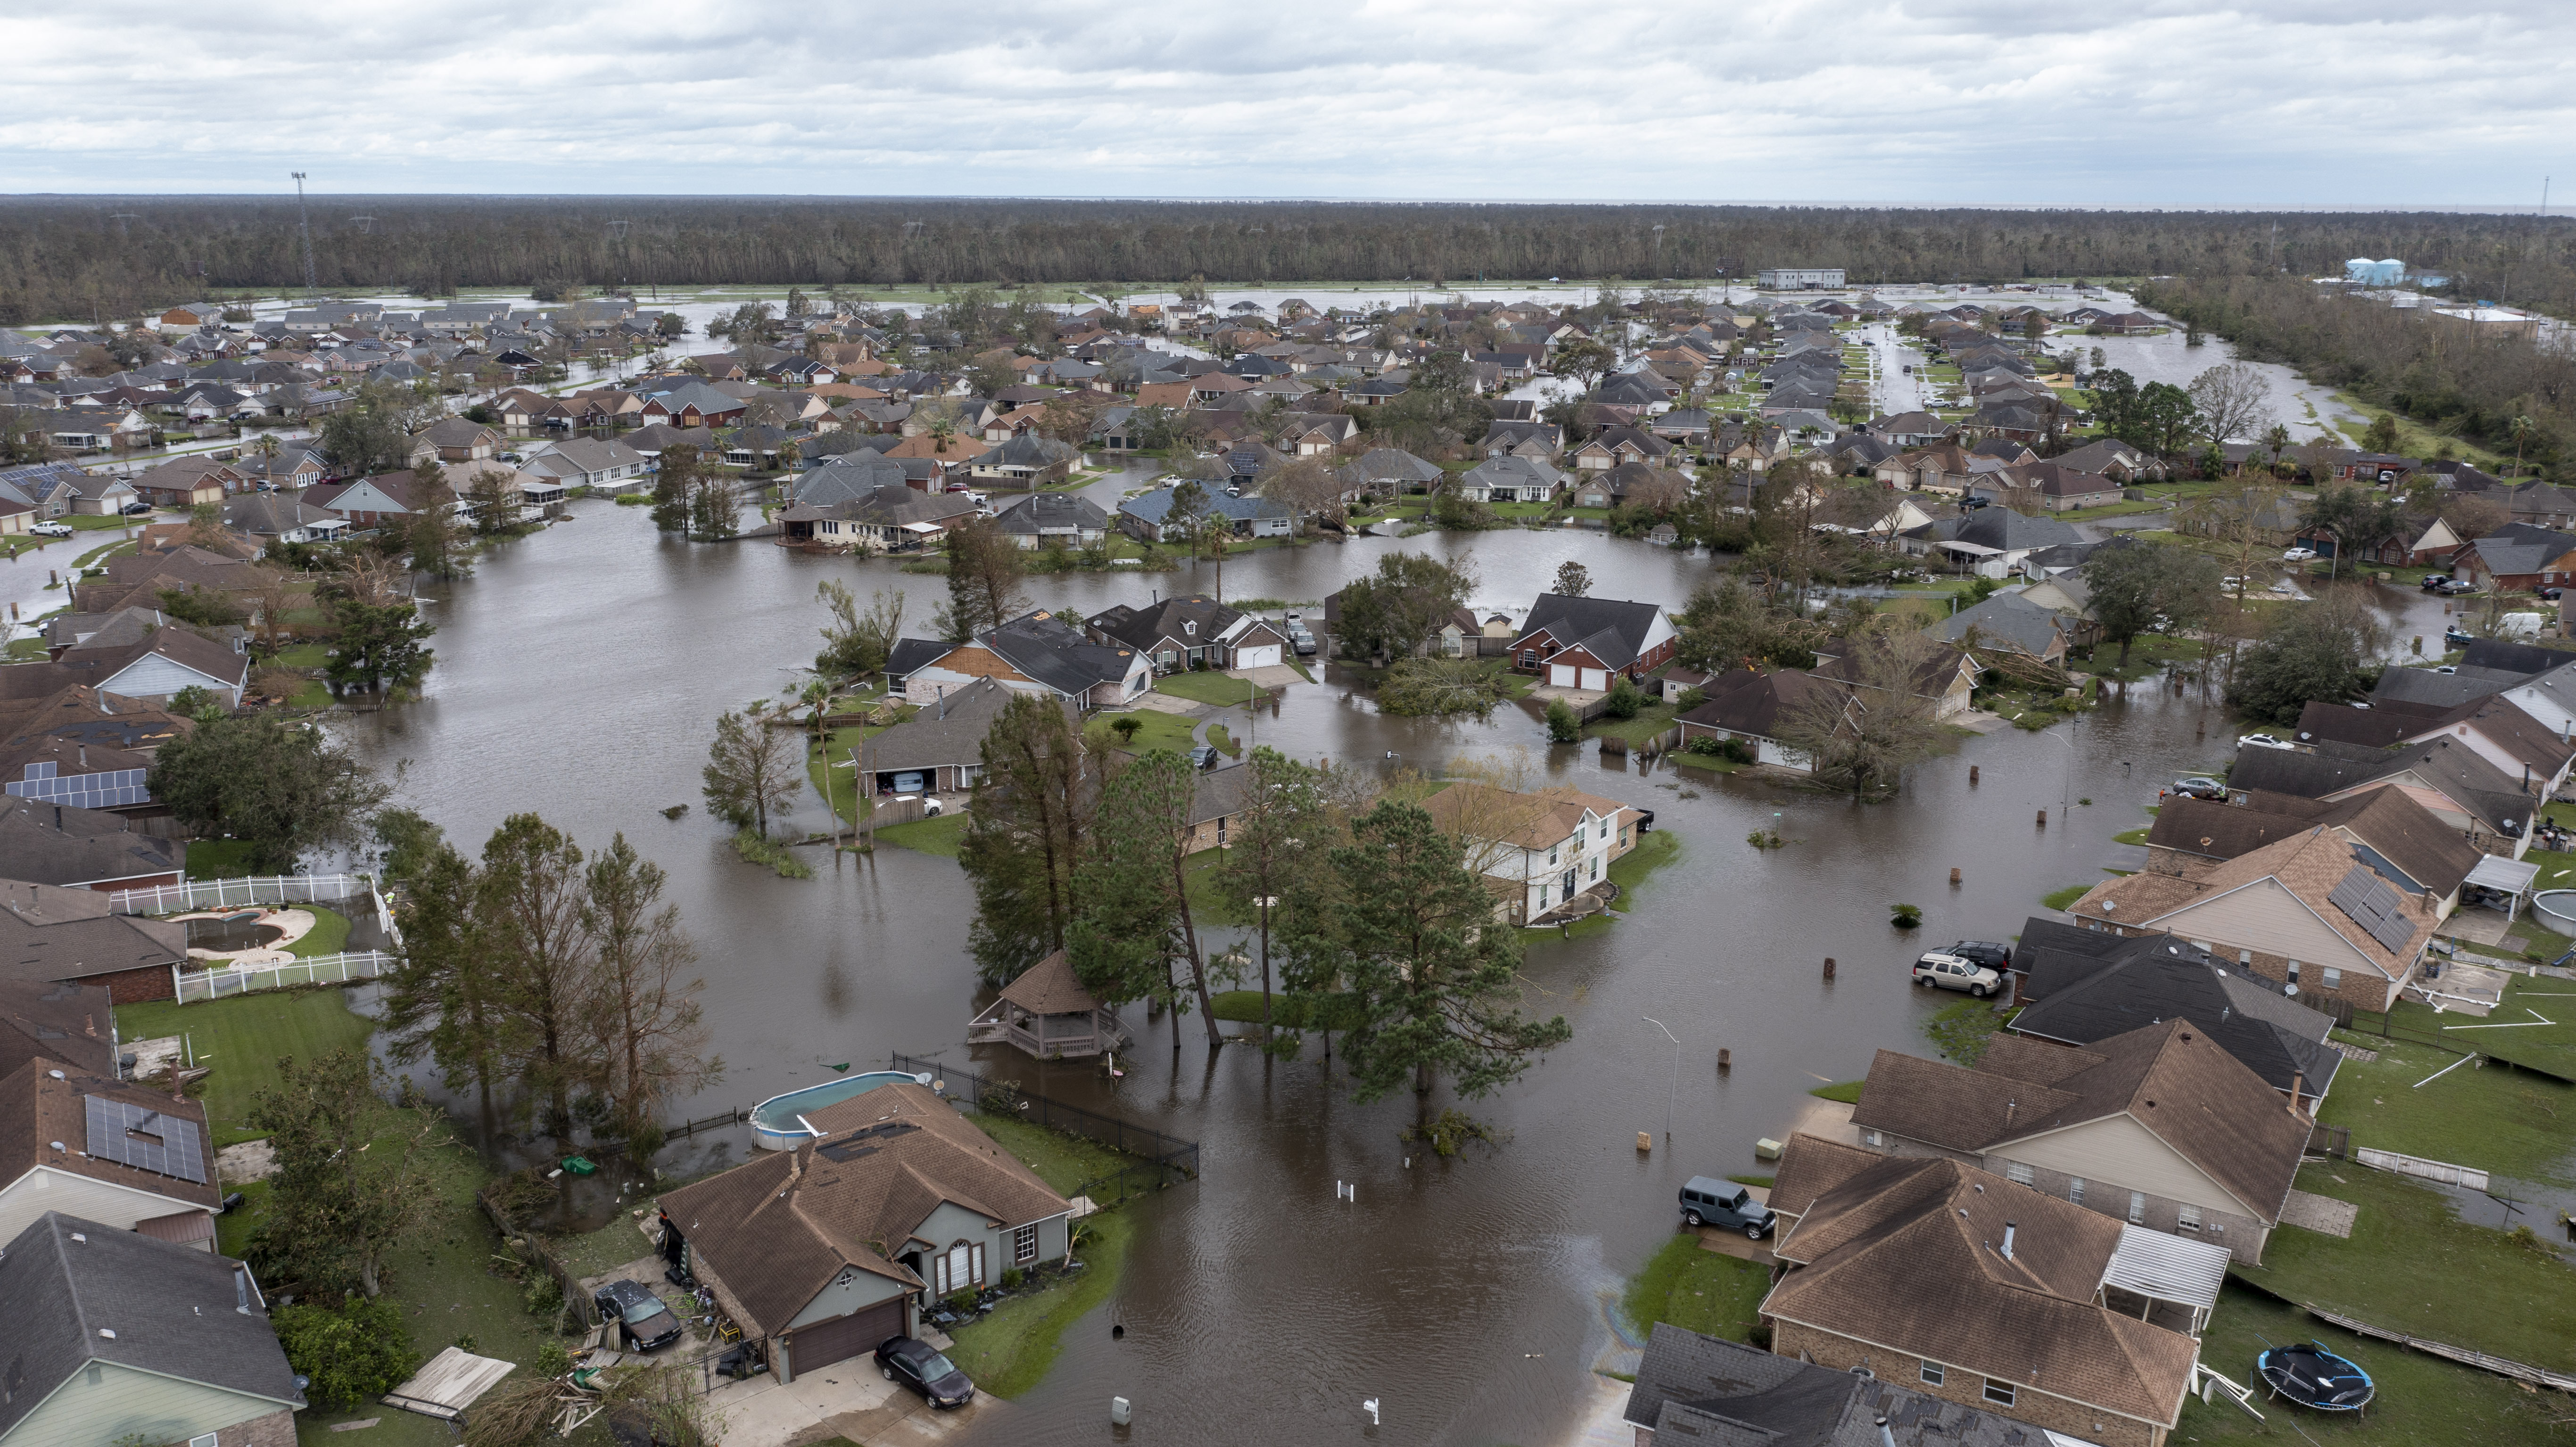 Flooded streets and homes are shown in the Spring Meadow subdivision in LaPlace, Louisiana after Hurricane Ida.